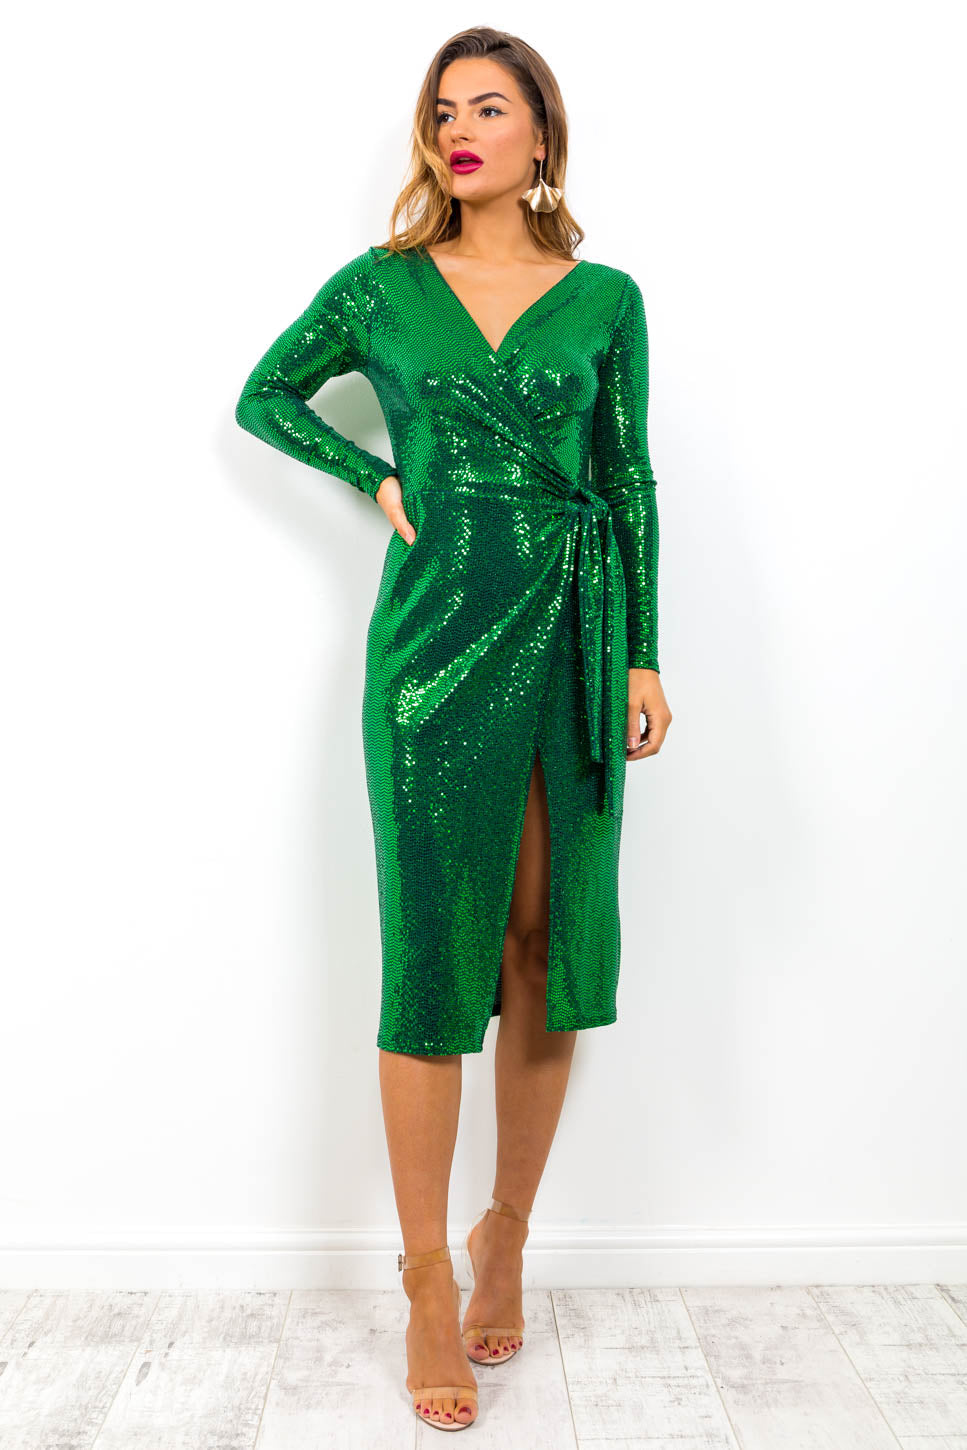 https://cdn.shopify.com/s/files/1/0062/6661/7925/files/product-video-sparks_fly-dress-in-green-mirror.mp4?5988